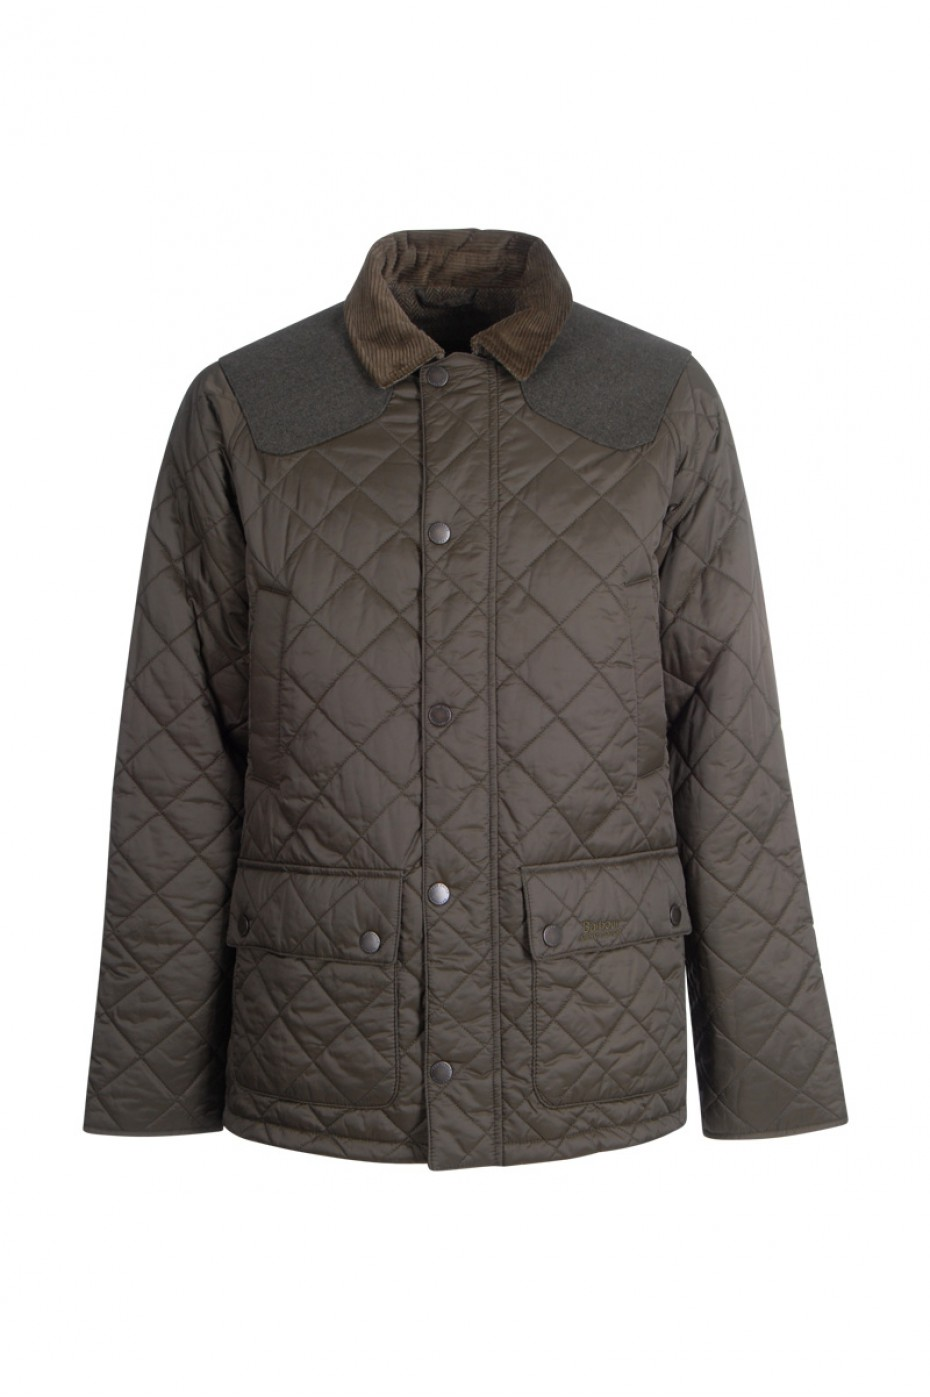 Barbour Horstead Jacket Barbour Lifestyle Collection: Regular Fit